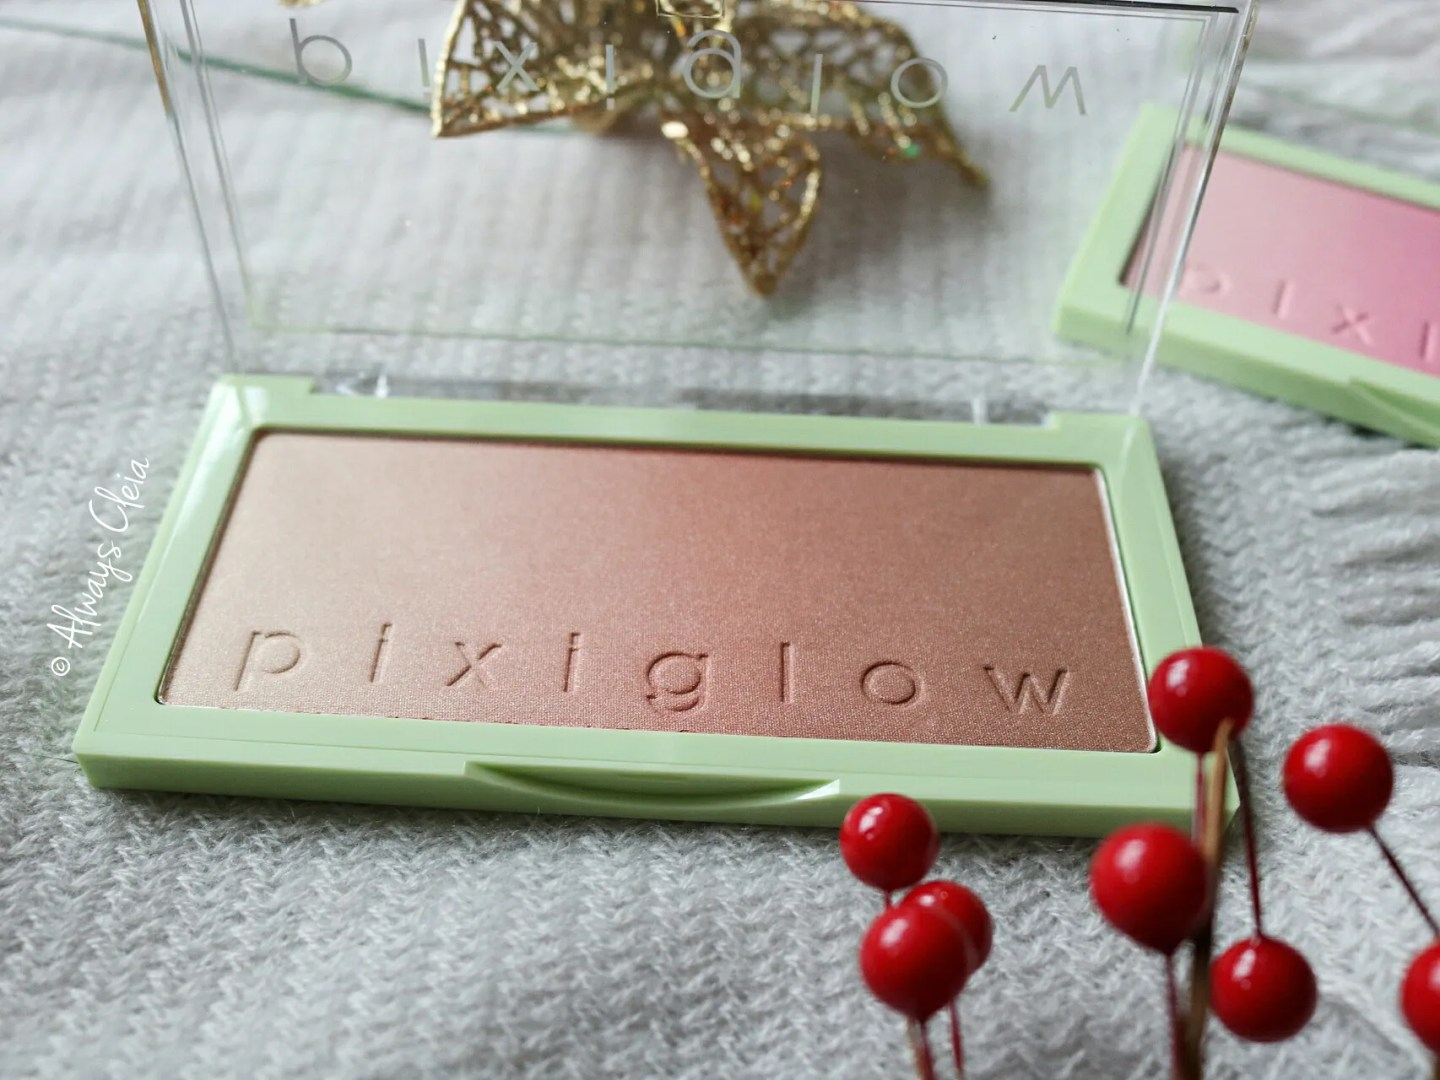 Pixiglow Cakes Review